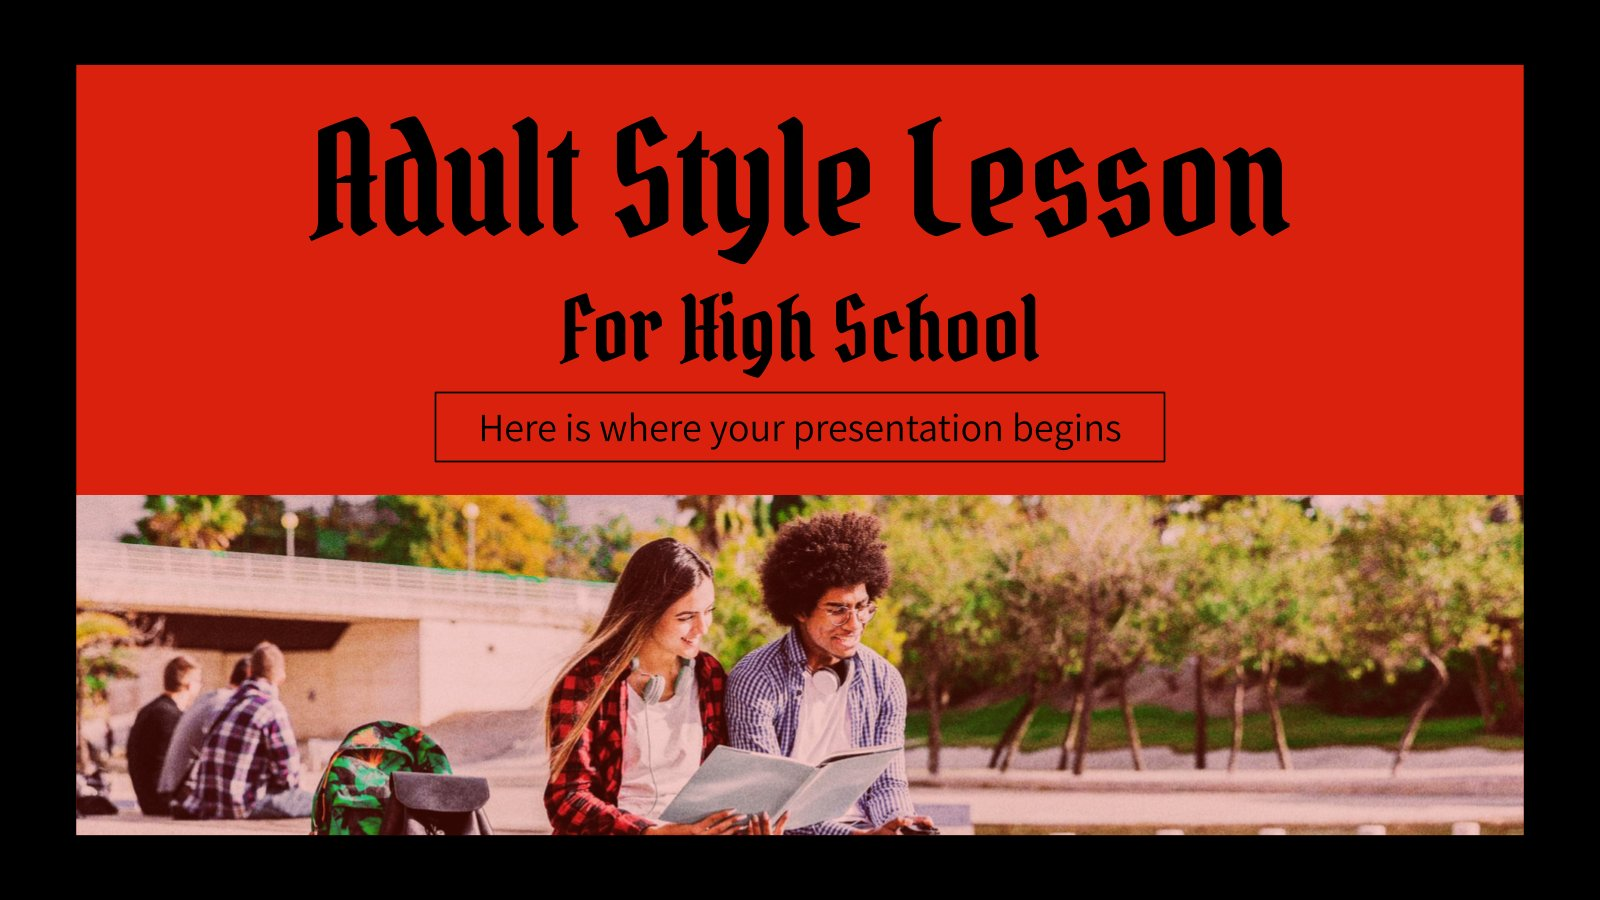 Adult Style Lesson for High School presentation template